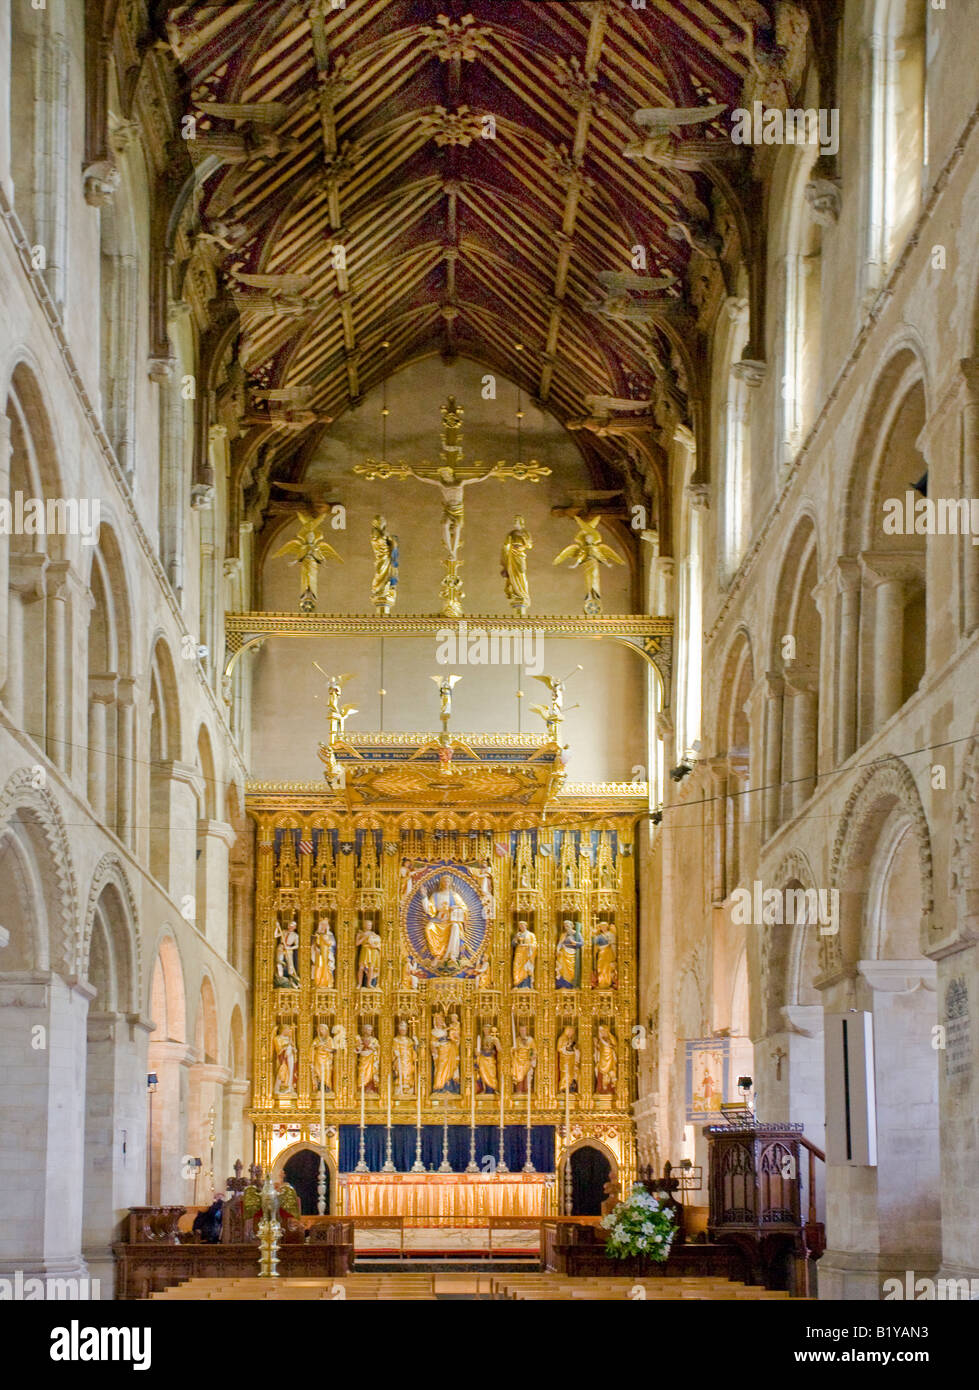 Interior view of Wymondham Abbey Norfolk England looking down the nave towards the altar - Stock Image